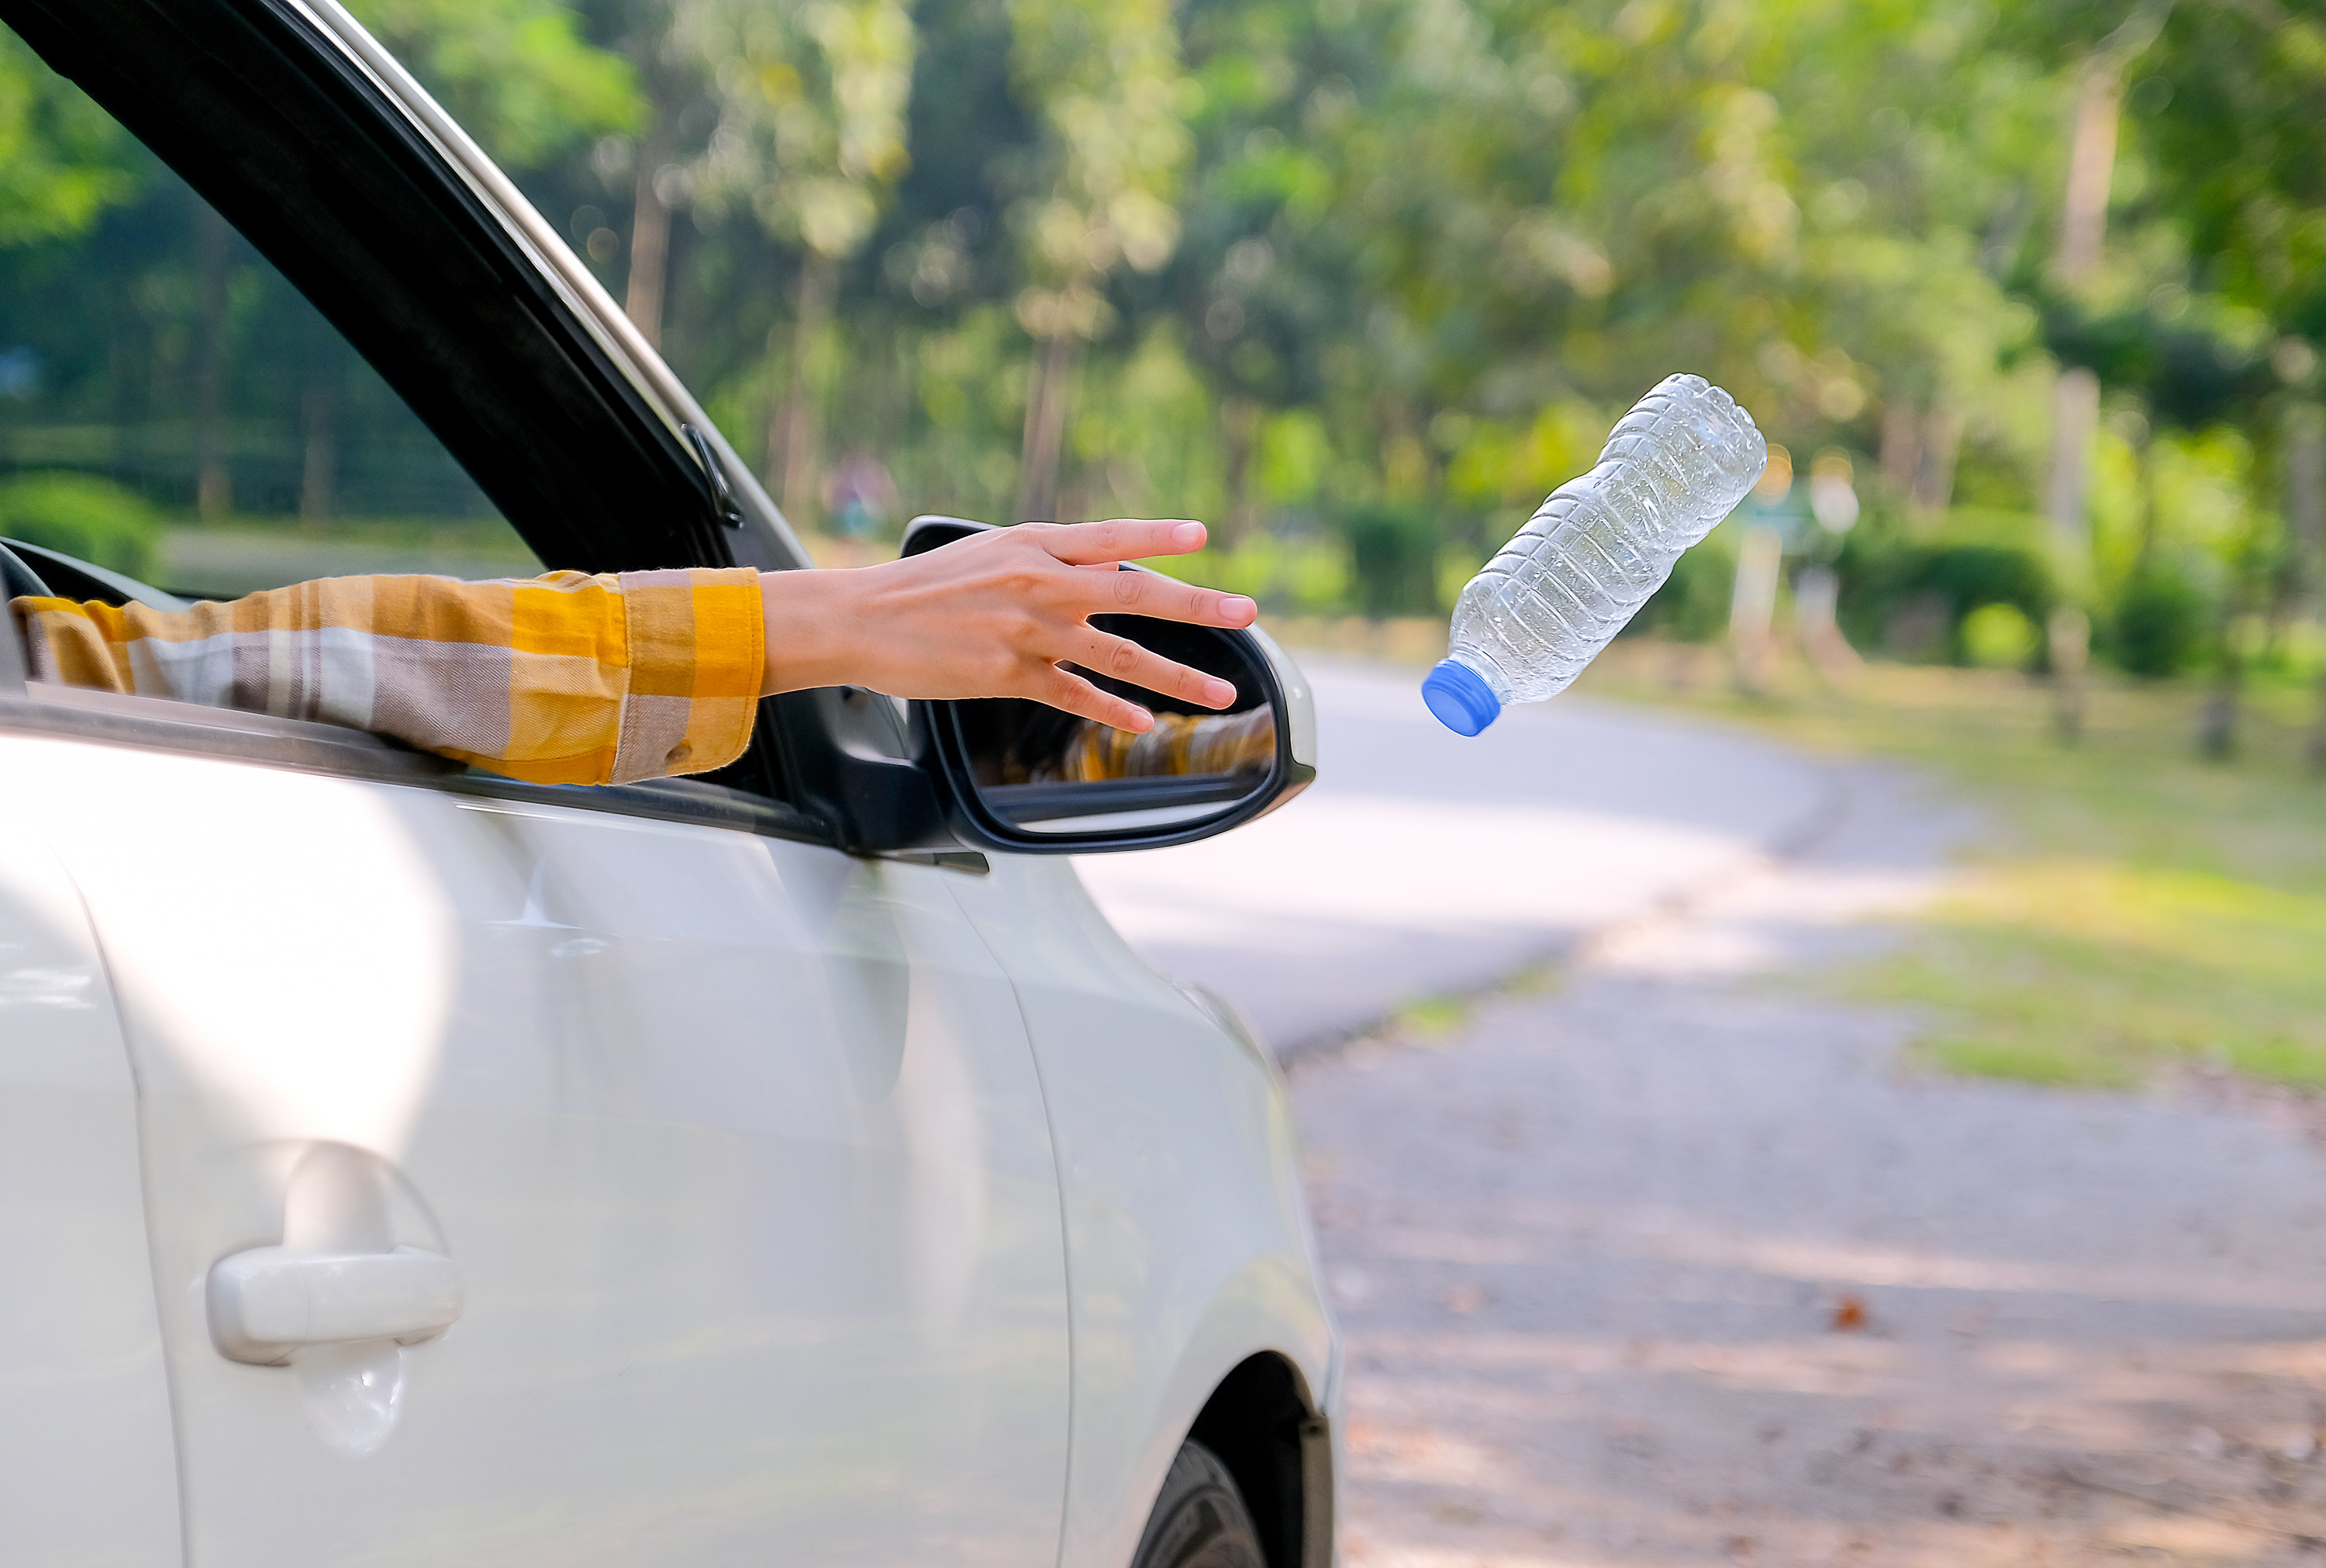 Photo of a person tossing a water bottle out the window of their car.